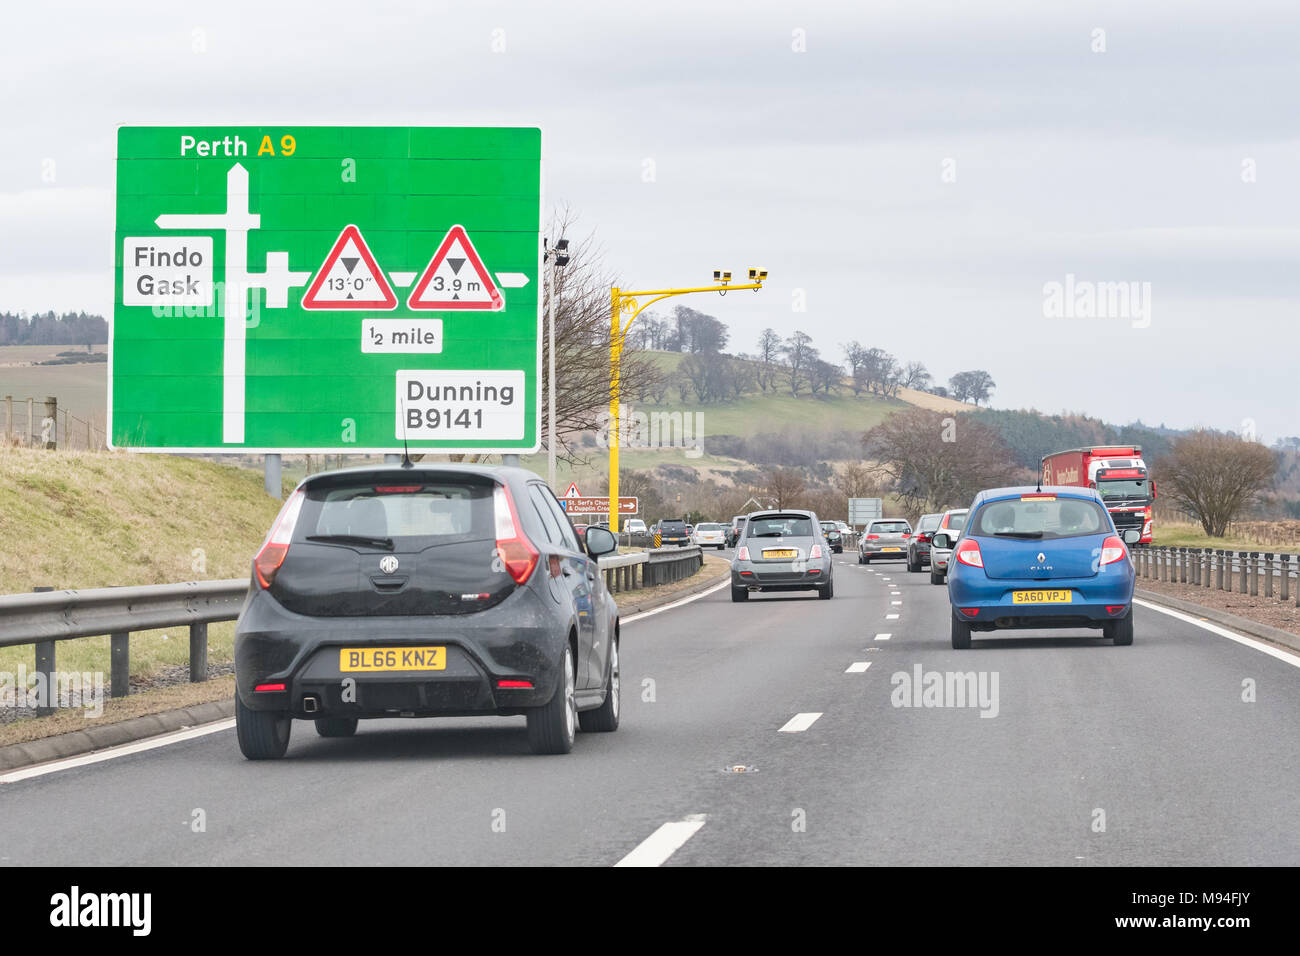 average speed cameras on A9 road, Scotland, UK - Stock Image